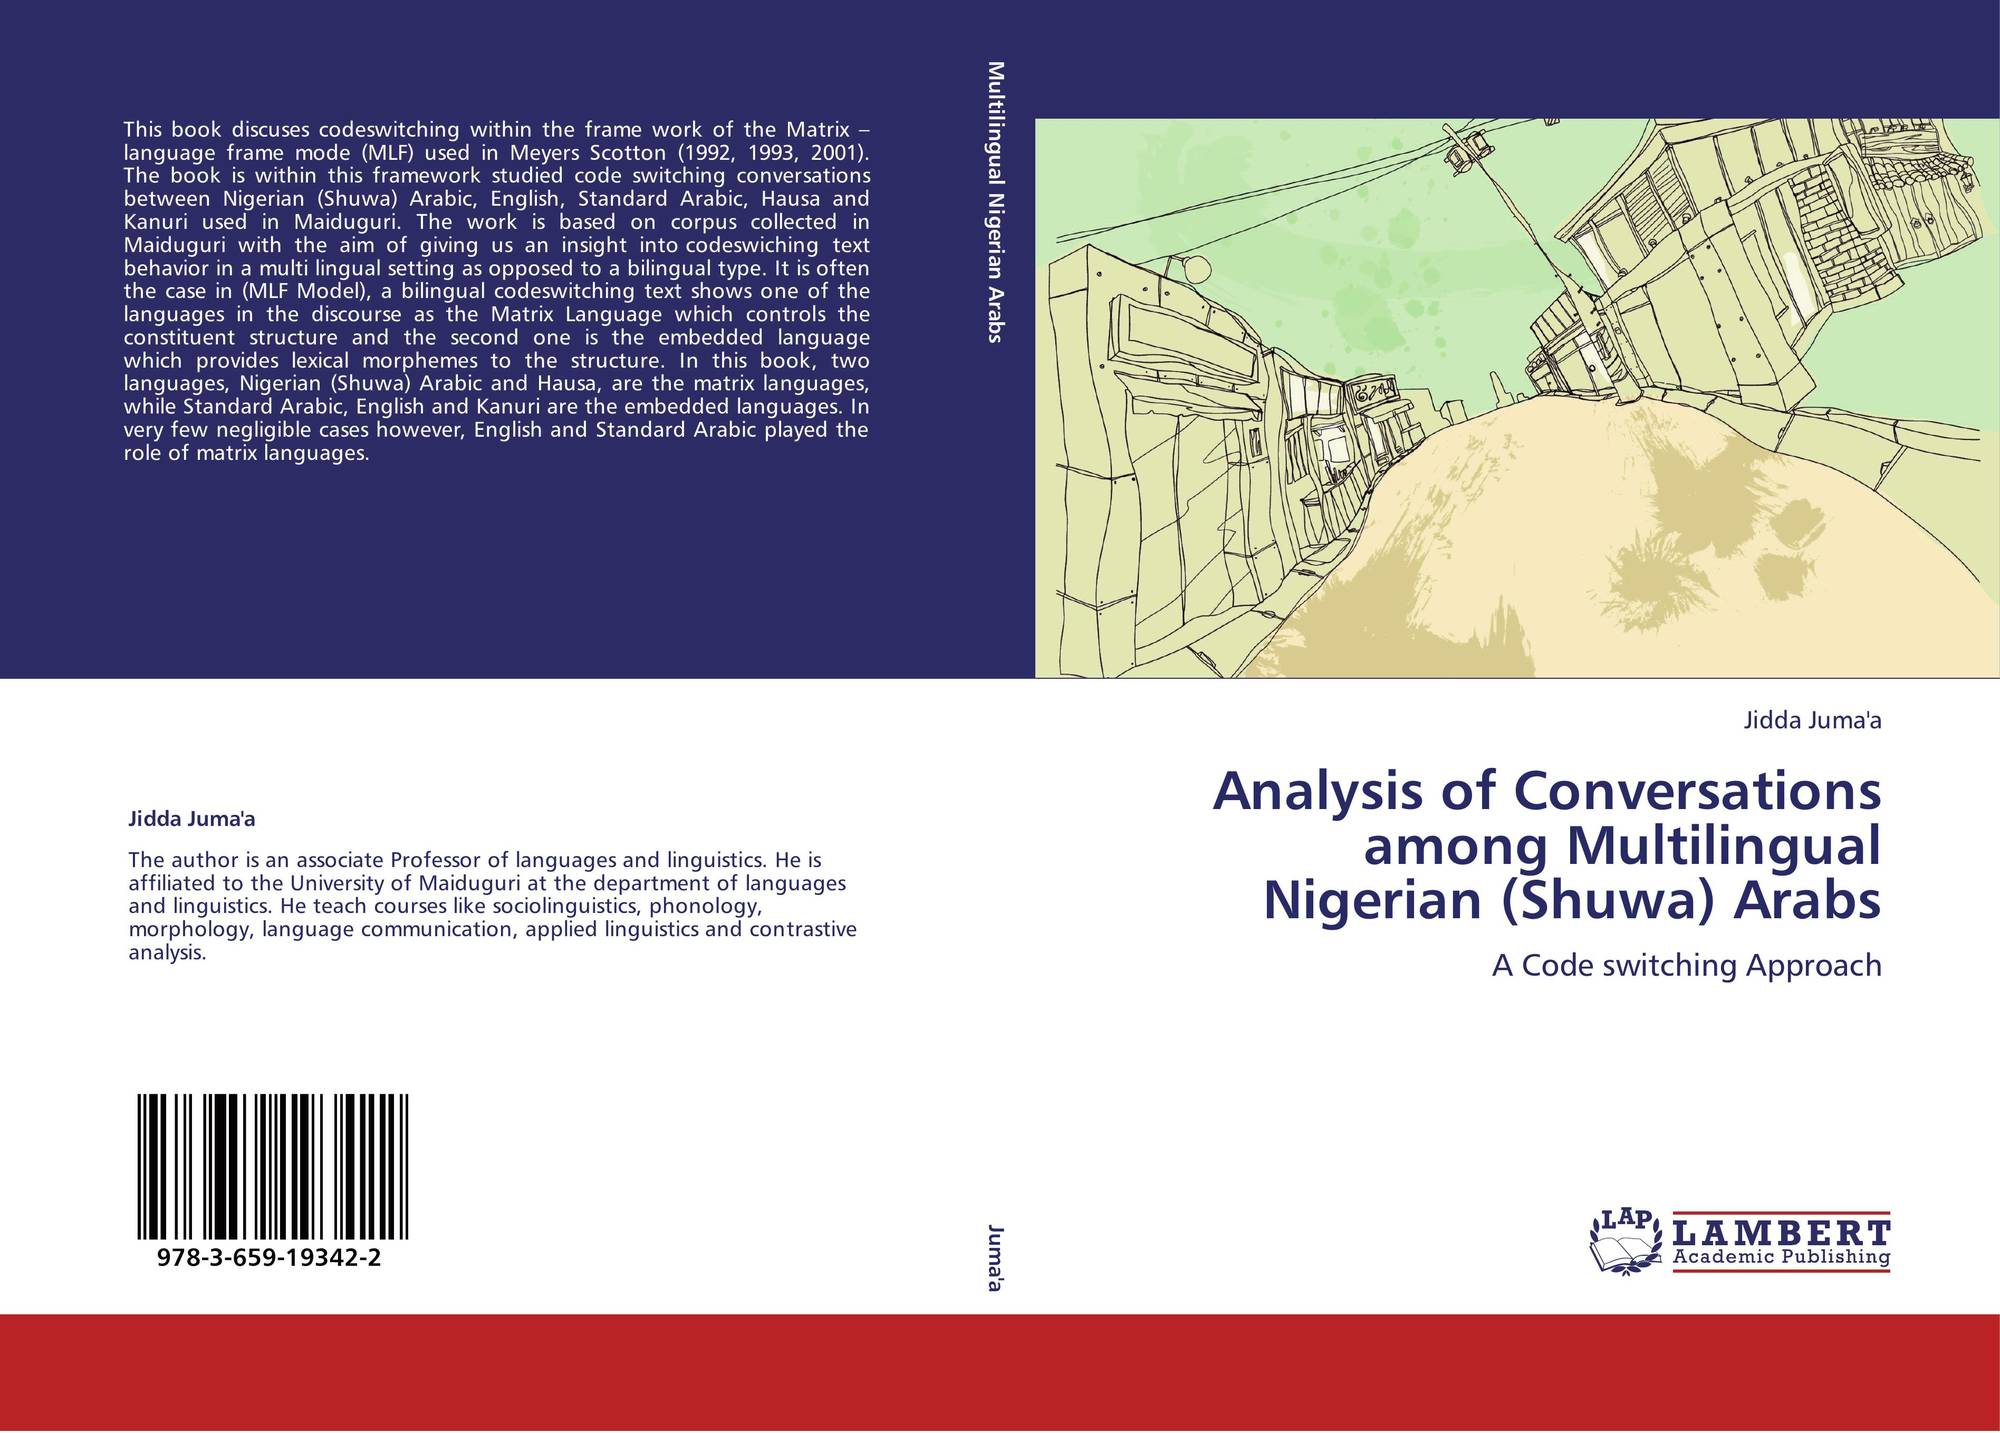 multilingualism in nigeria University of nigeria nsukka unn staff profile prof agbedo christopher | publications (articles and journals) home multilingualism in nigeria.